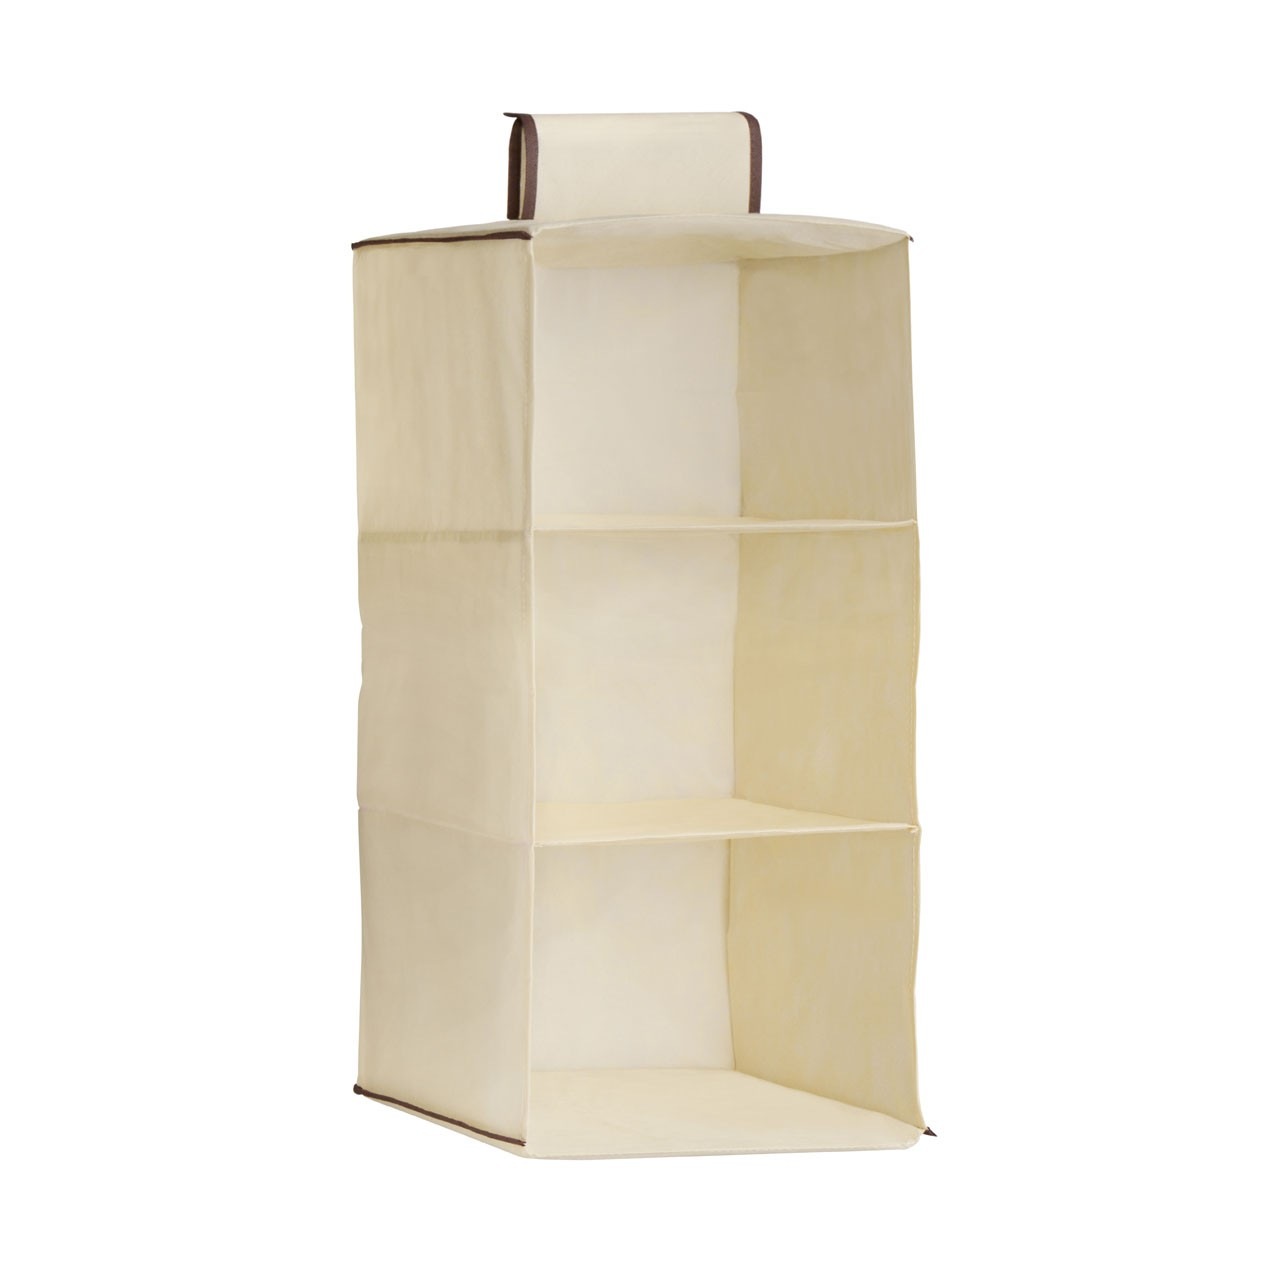 3 Section Hanging Garment Organiser - Cream